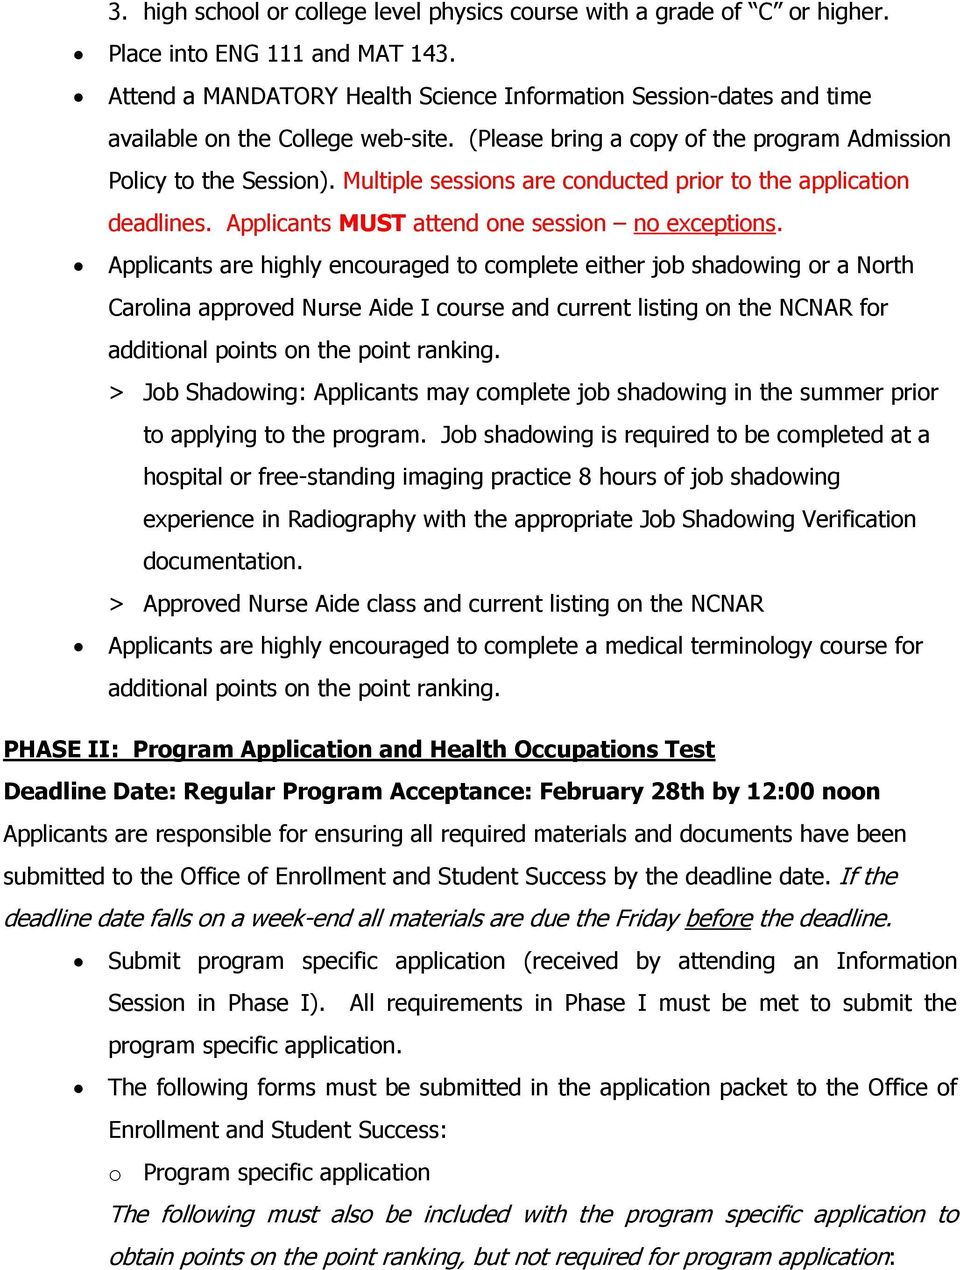 douglas college application deadlines for fall 2017